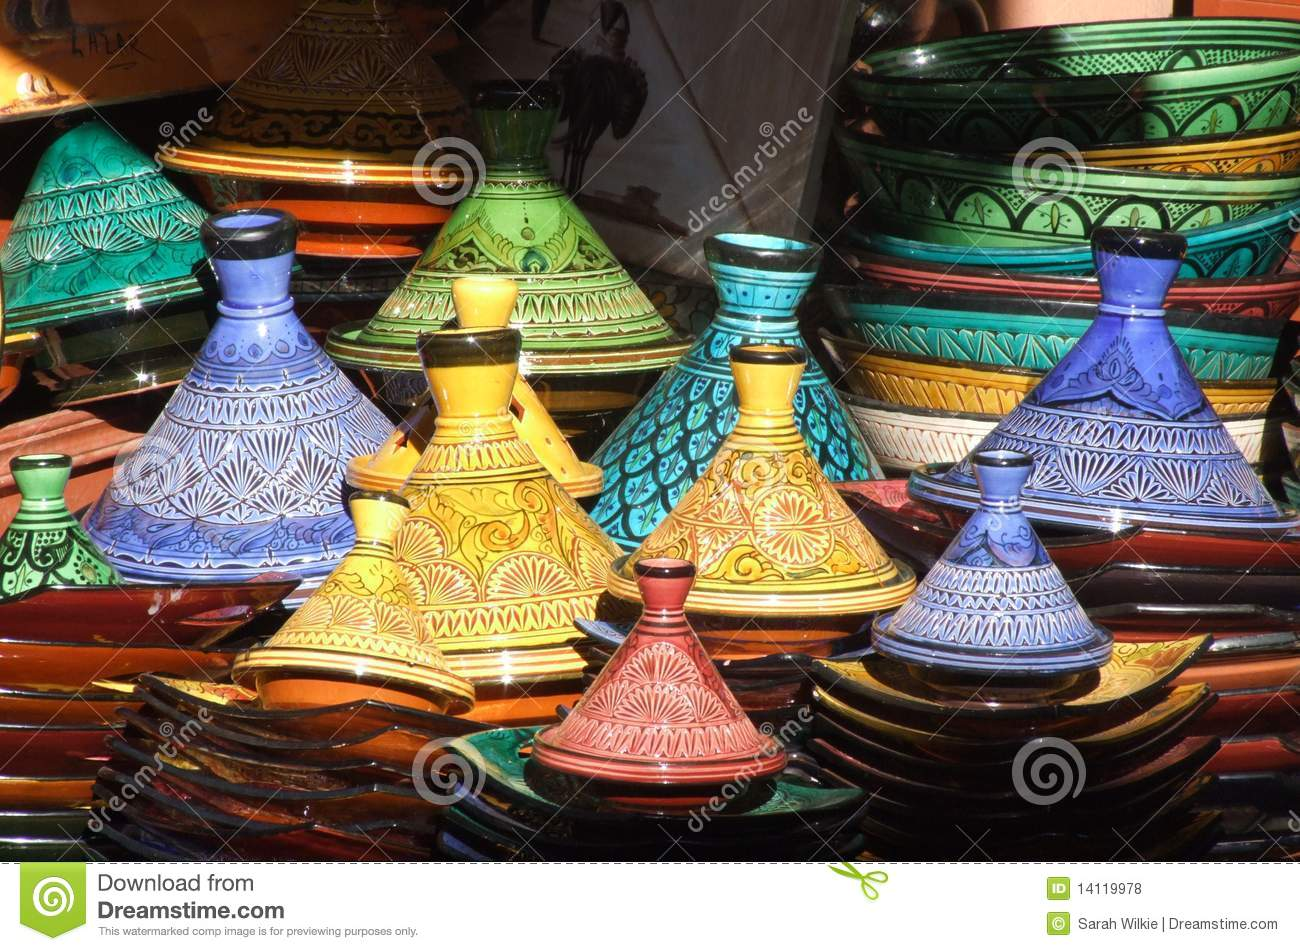 tagine pots marrakesh souk royalty free stock photos. Black Bedroom Furniture Sets. Home Design Ideas